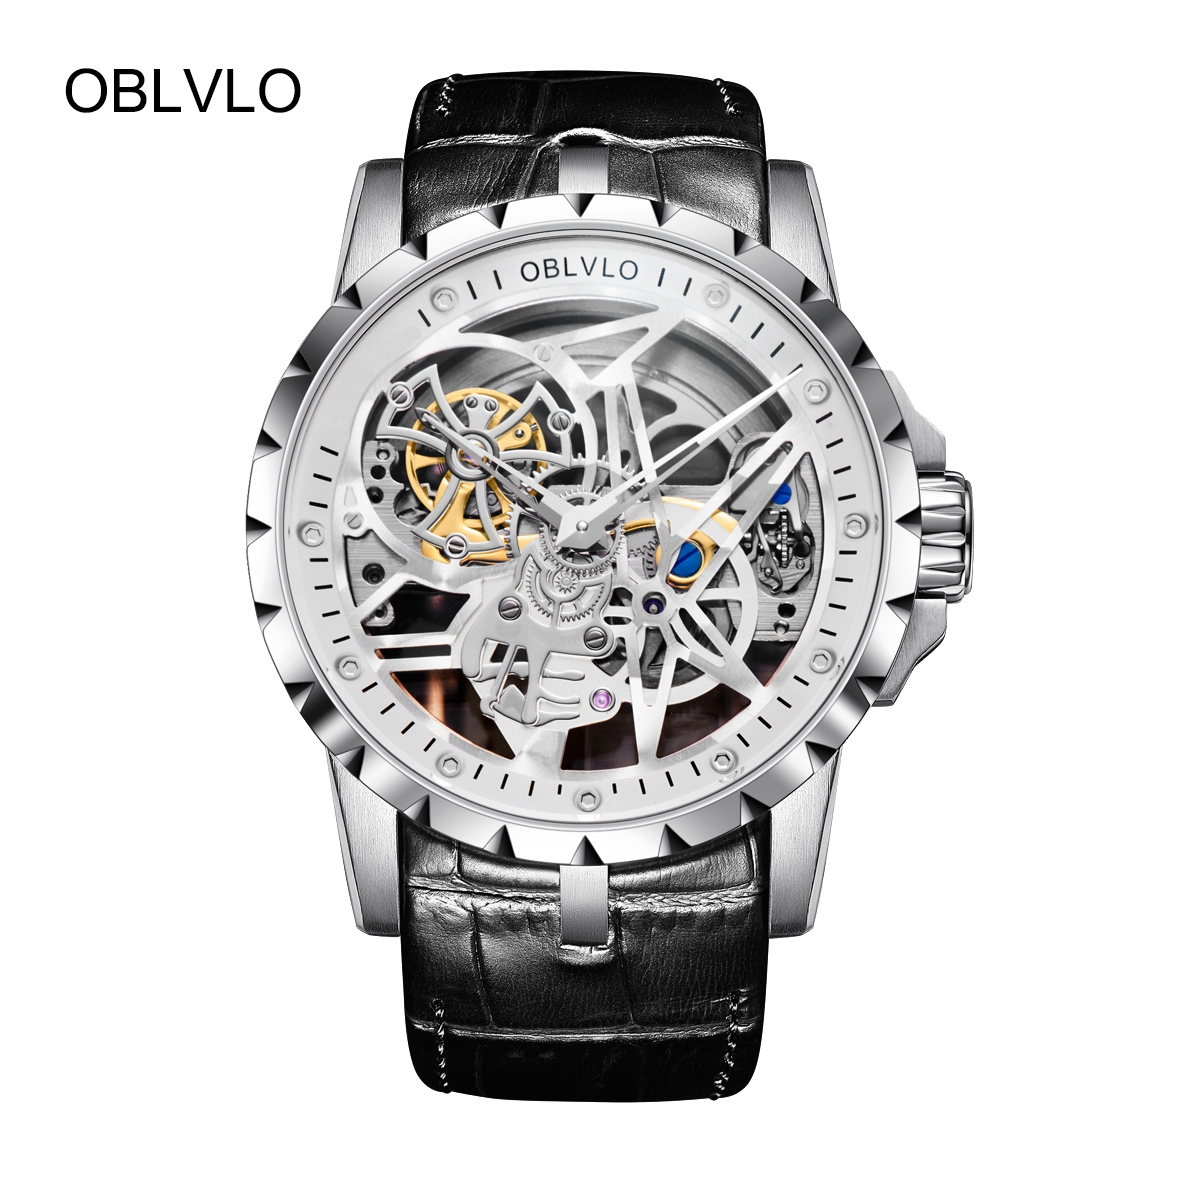 OBLVLO Mens Steel Tourbillon Skeleton Designer Fashion Watch Leather Transparent Automatic Watch OBL3603SSBW